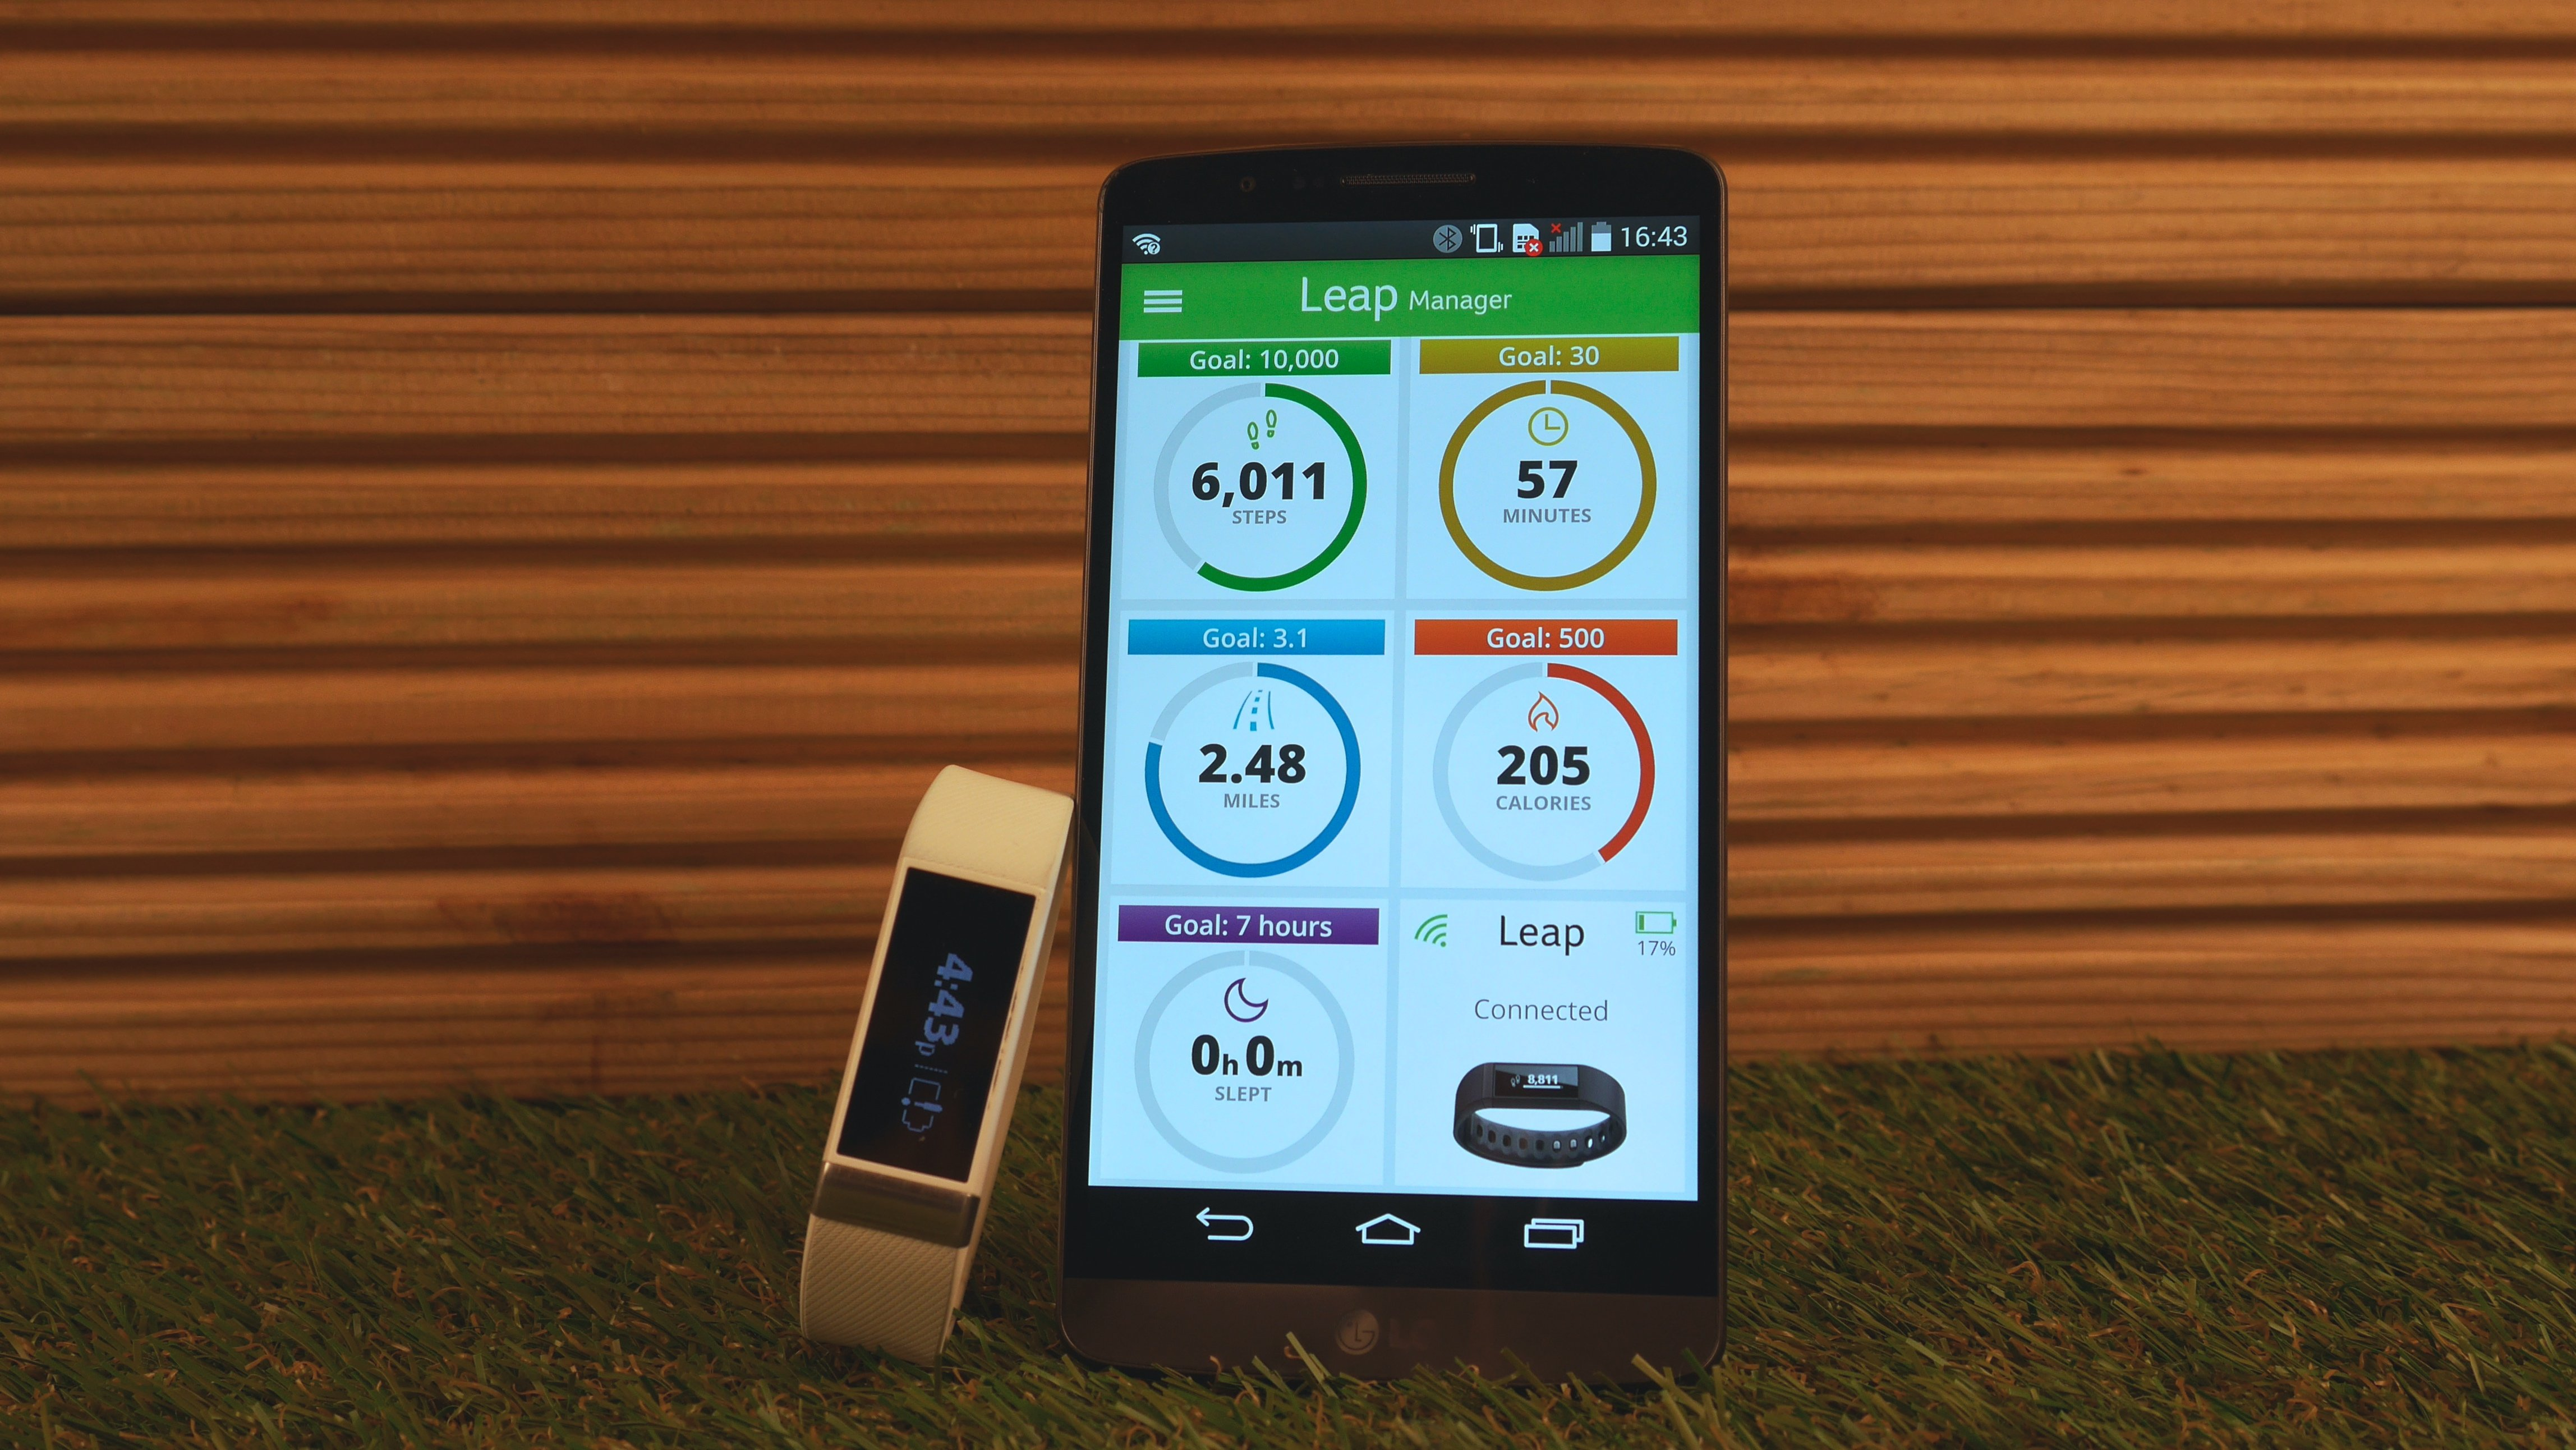 Acer Liquid Leap App Battery Life And Conclusion 2